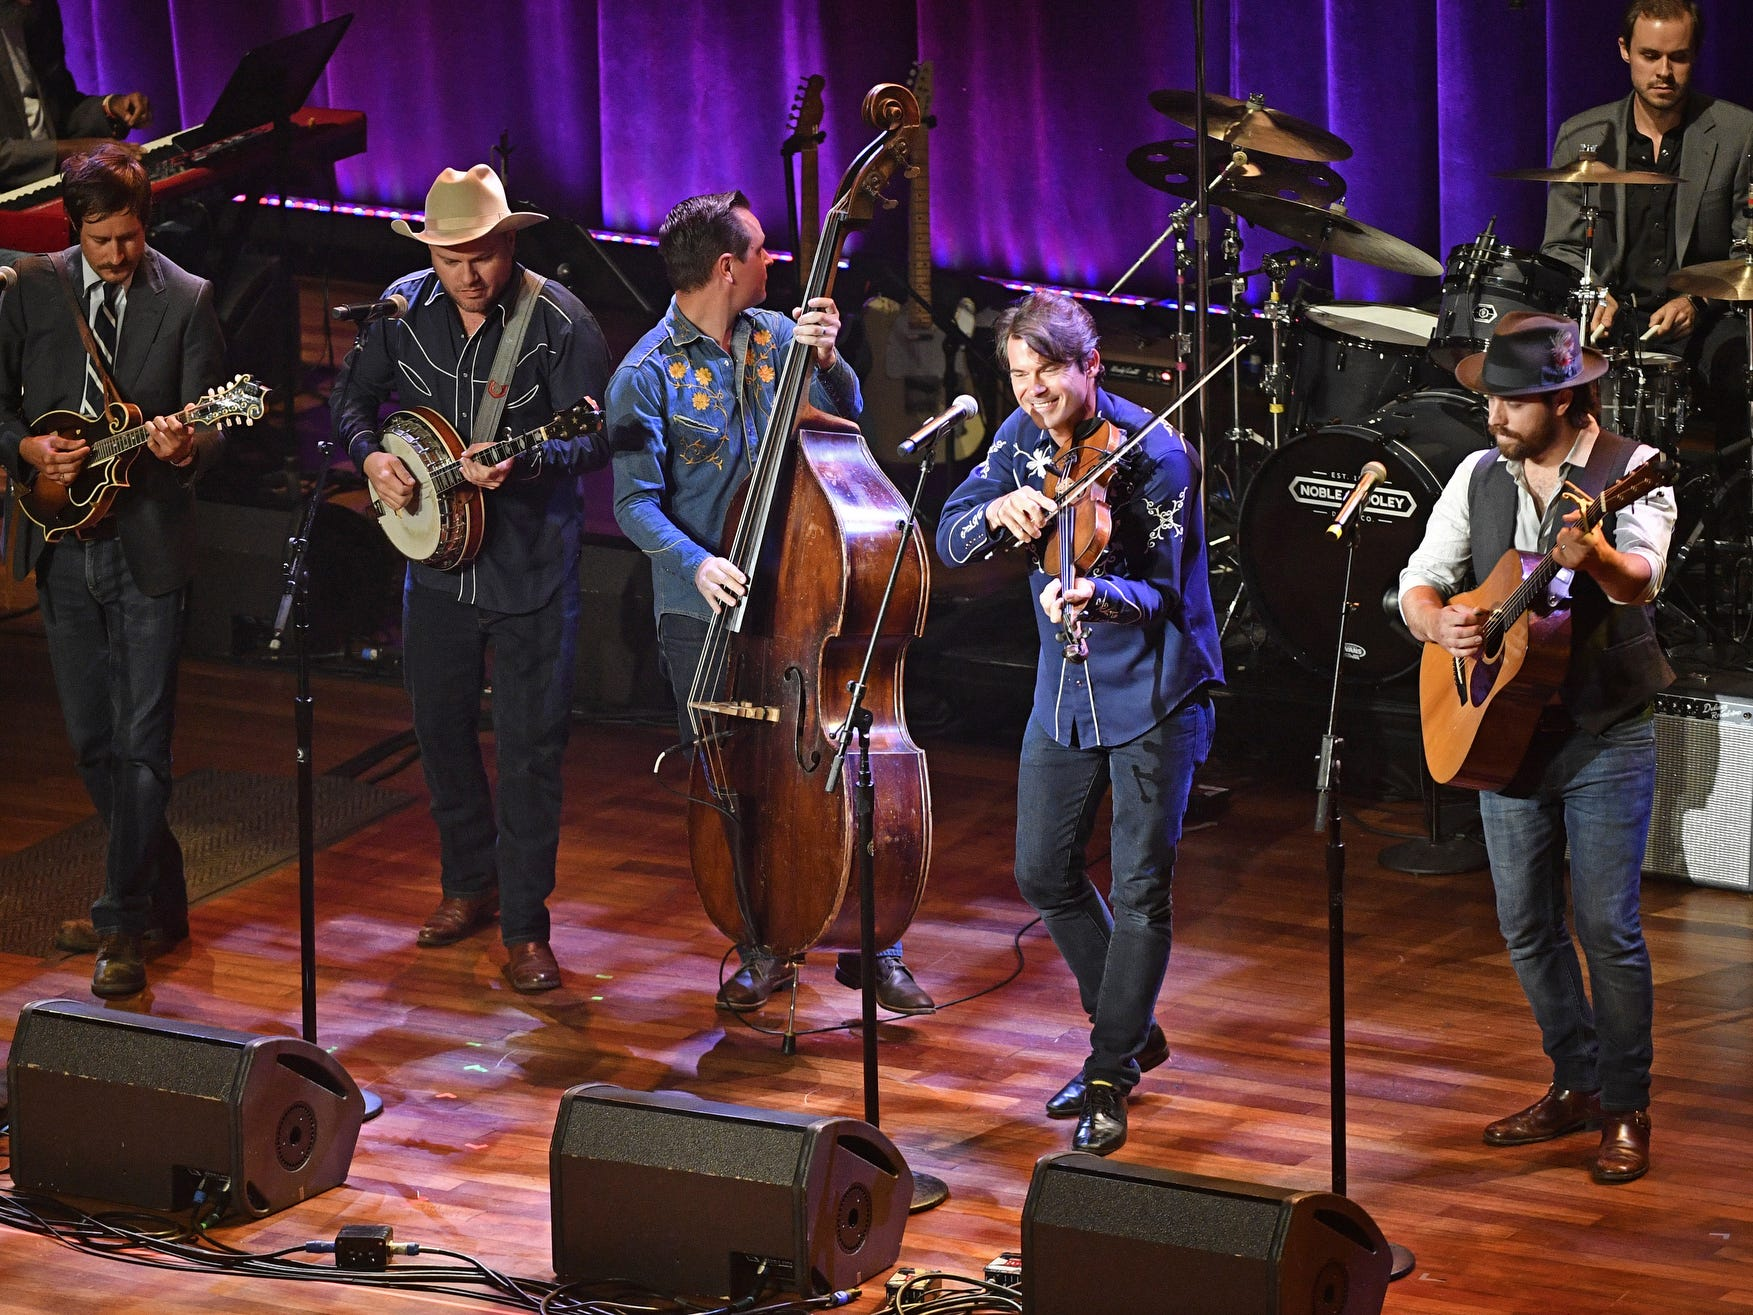 OCT. 13GRAND OLE OPRY BIRTHDAY BASH (CONTINUED) WITH OLD CROW MEDICINE SHOW AND MORE: 7 and 9:30 p.m. Grand Ole Opry House, $40-$99, opry.com